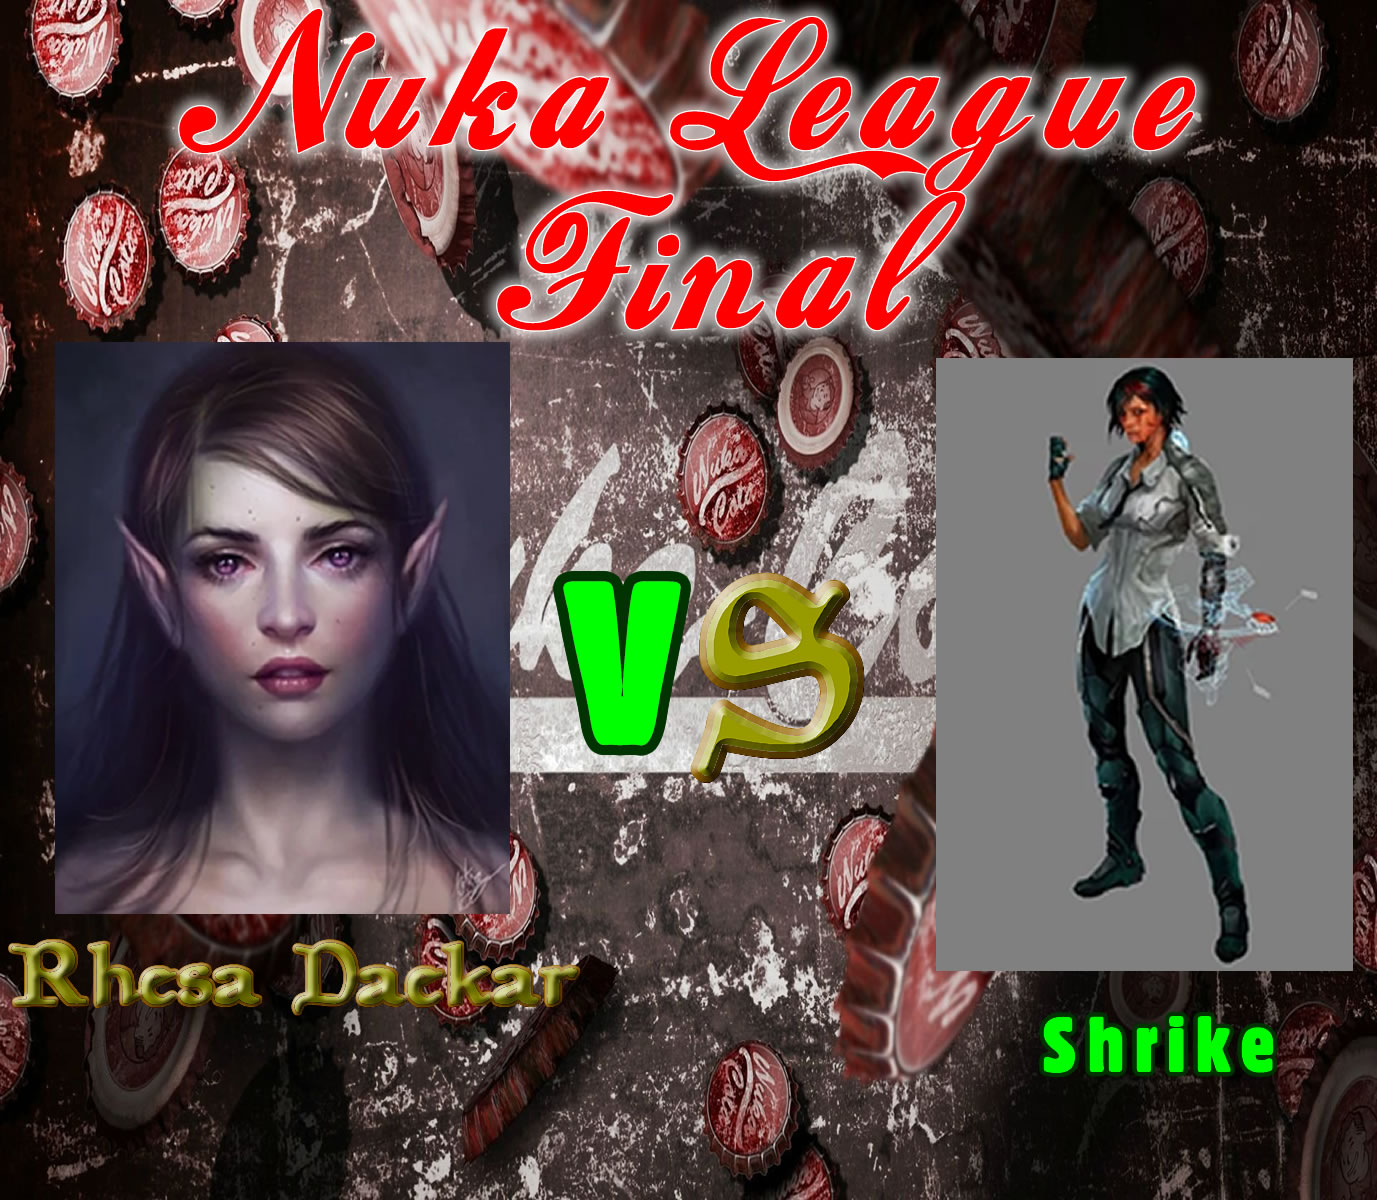 Gay 2019i Nuka league Final